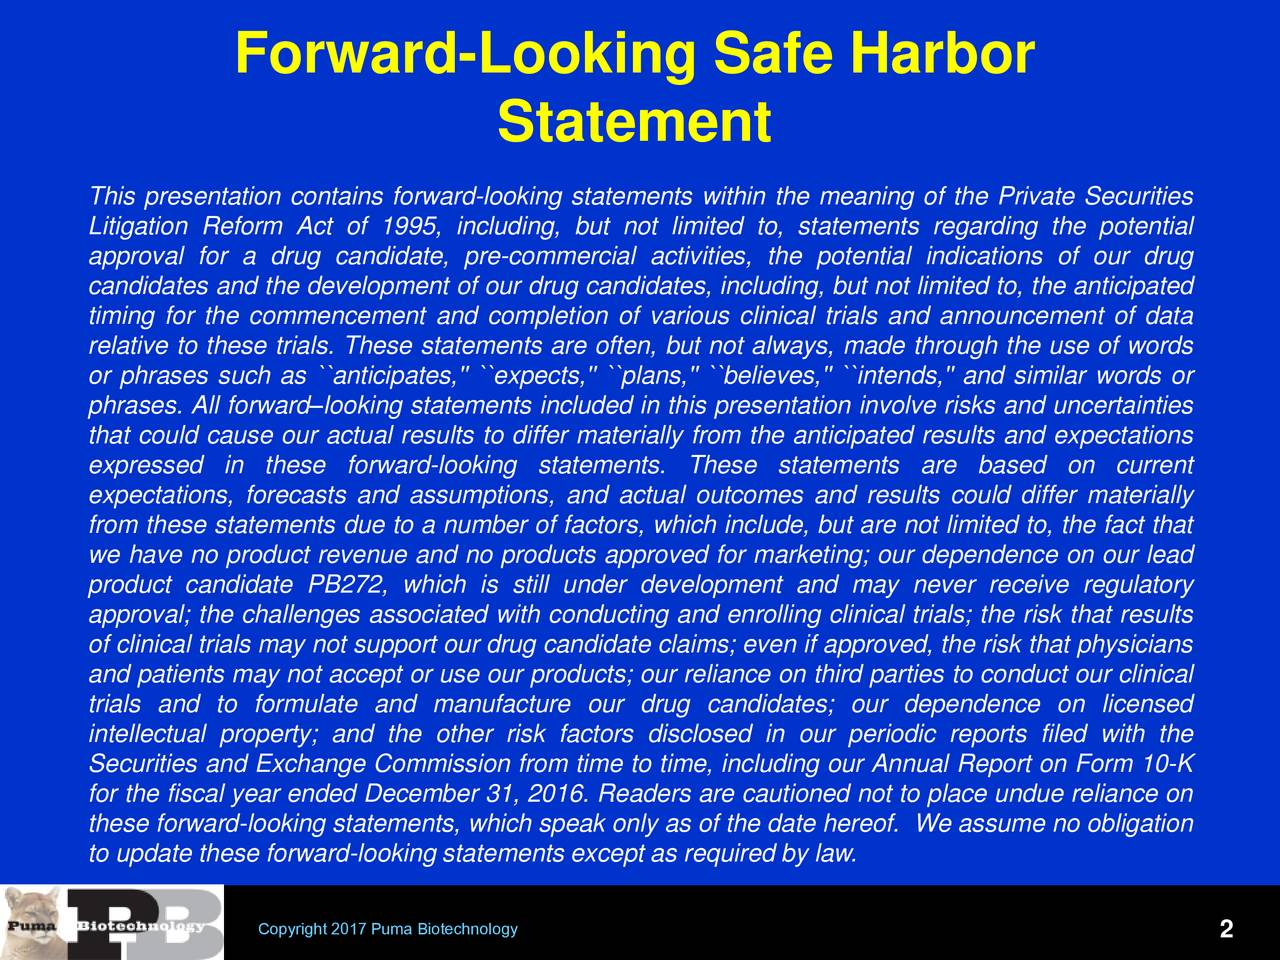 Statement This presentation contains forward-looking statements within the meaning of the Private Securities Litigation Reform Act of 1995, including, but not limited to, statements regarding the potential approval for a drug candidate, pre-commercial activities, the potential indications of our drug candidates and the development of our drug candidates, including, but not limited to, the anticipated timing for the commencement and completion of various clinical trials and announcement of data relative to these trials. These statements are often, but not always, made through the use of words or phrases such as ``anticipates,'' ``expects,'' ``plans,'' ``believes,'' ``intends,'' and similar words or phrases. All forwardlooking statements included in this presentation involve risks and uncertainties that could cause our actual results to differ materially from the anticipated results and expectations expressed in these forward-looking statements. These statements are based on current expectations, forecasts and assumptions, and actual outcomes and results could differ materially from these statements due to a number of factors, which include, but are not limited to, the fact that we have no product revenue and no products approved for marketing; our dependence on our lead product candidate PB272, which is still under development and may never receive regulatory approval; the challenges associated with conducting and enrolling clinical trials; the risk that results of clinical trials may not support our drug candidate claims; even if approved, the risk that physicians and patients may not accept or use our products; our reliance on third parties to conduct our clinical trials and to formulate and manufacture our drug candidates; our dependence on licensed intellectual property; and the other risk factors disclosed in our periodic reports filed with the Securities and Exchange Commission from time to time, including our Annual Report on Form 10-K for the fiscal year ende